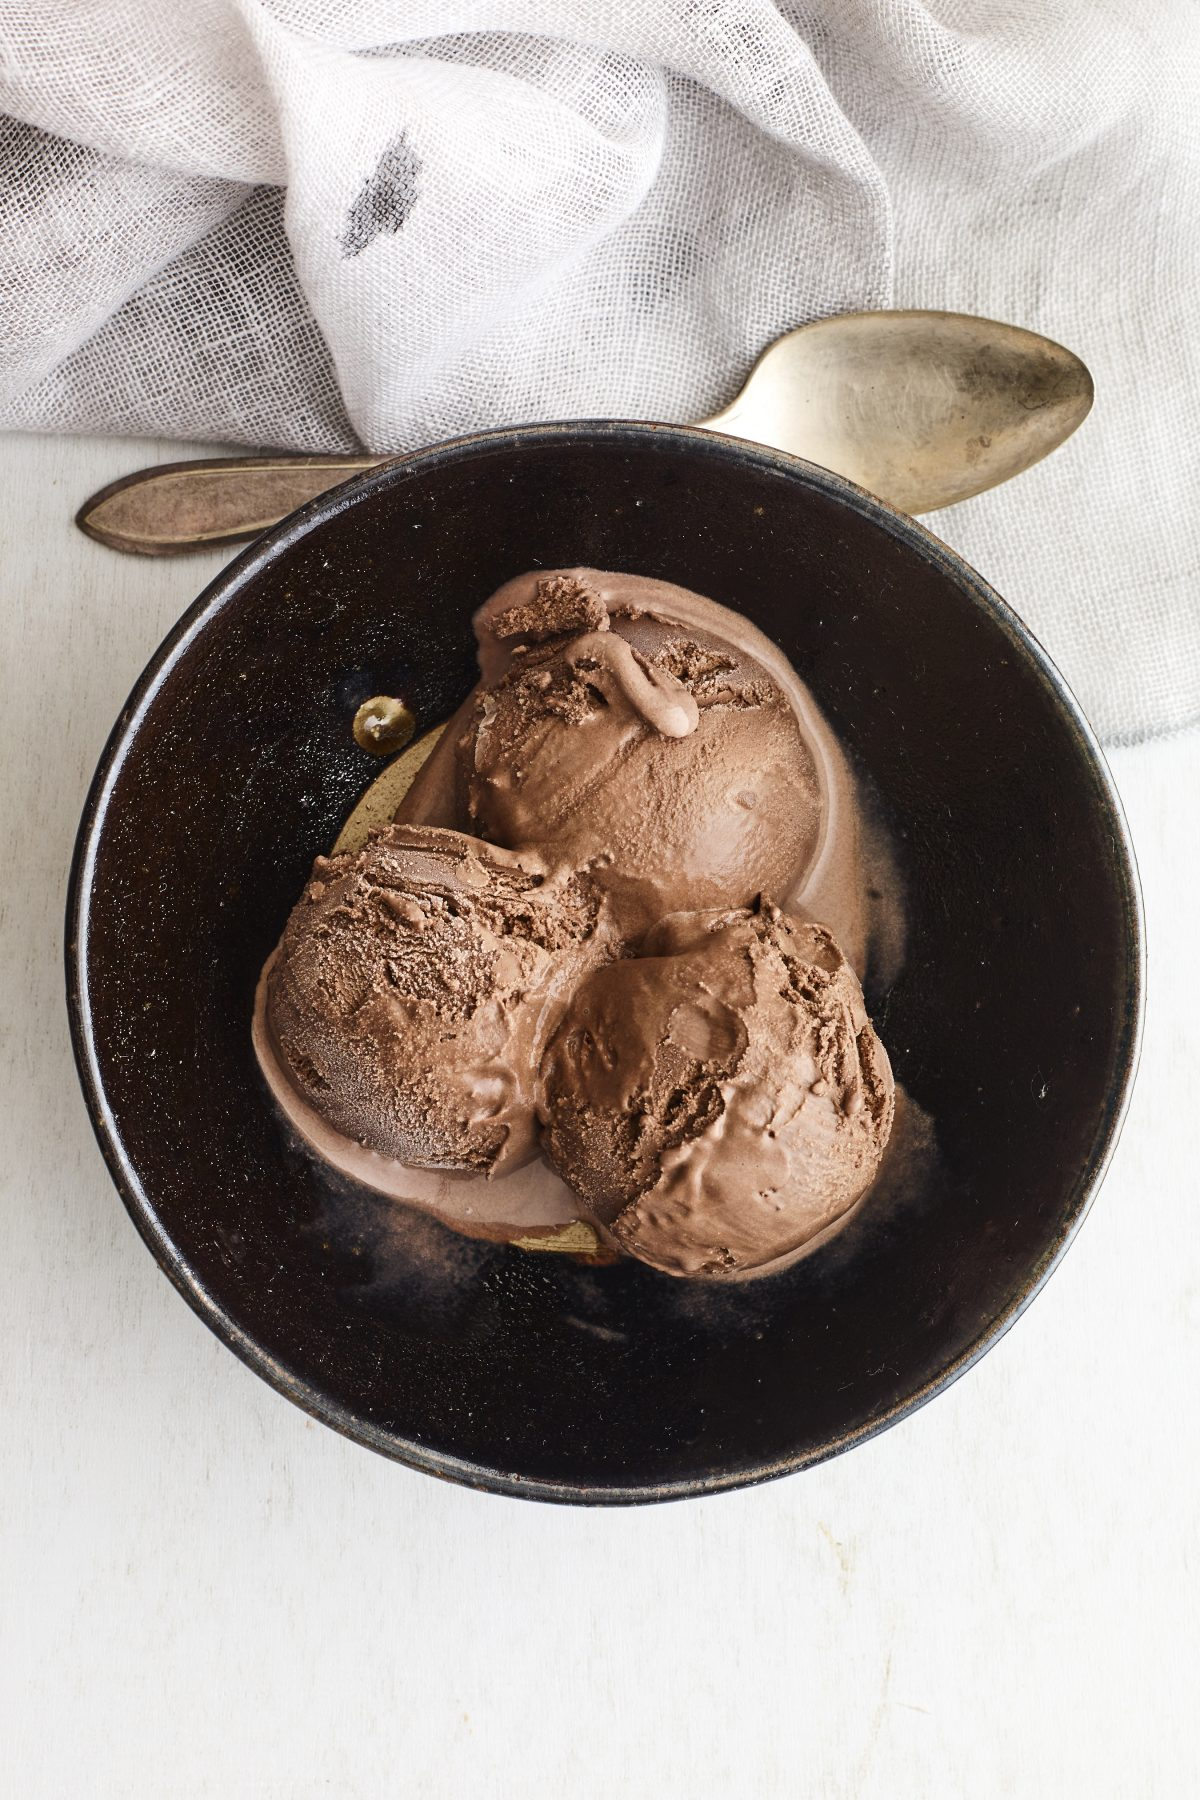 Bittersweet Chocolate and Extra Virgin Olive Oil Ice Cream